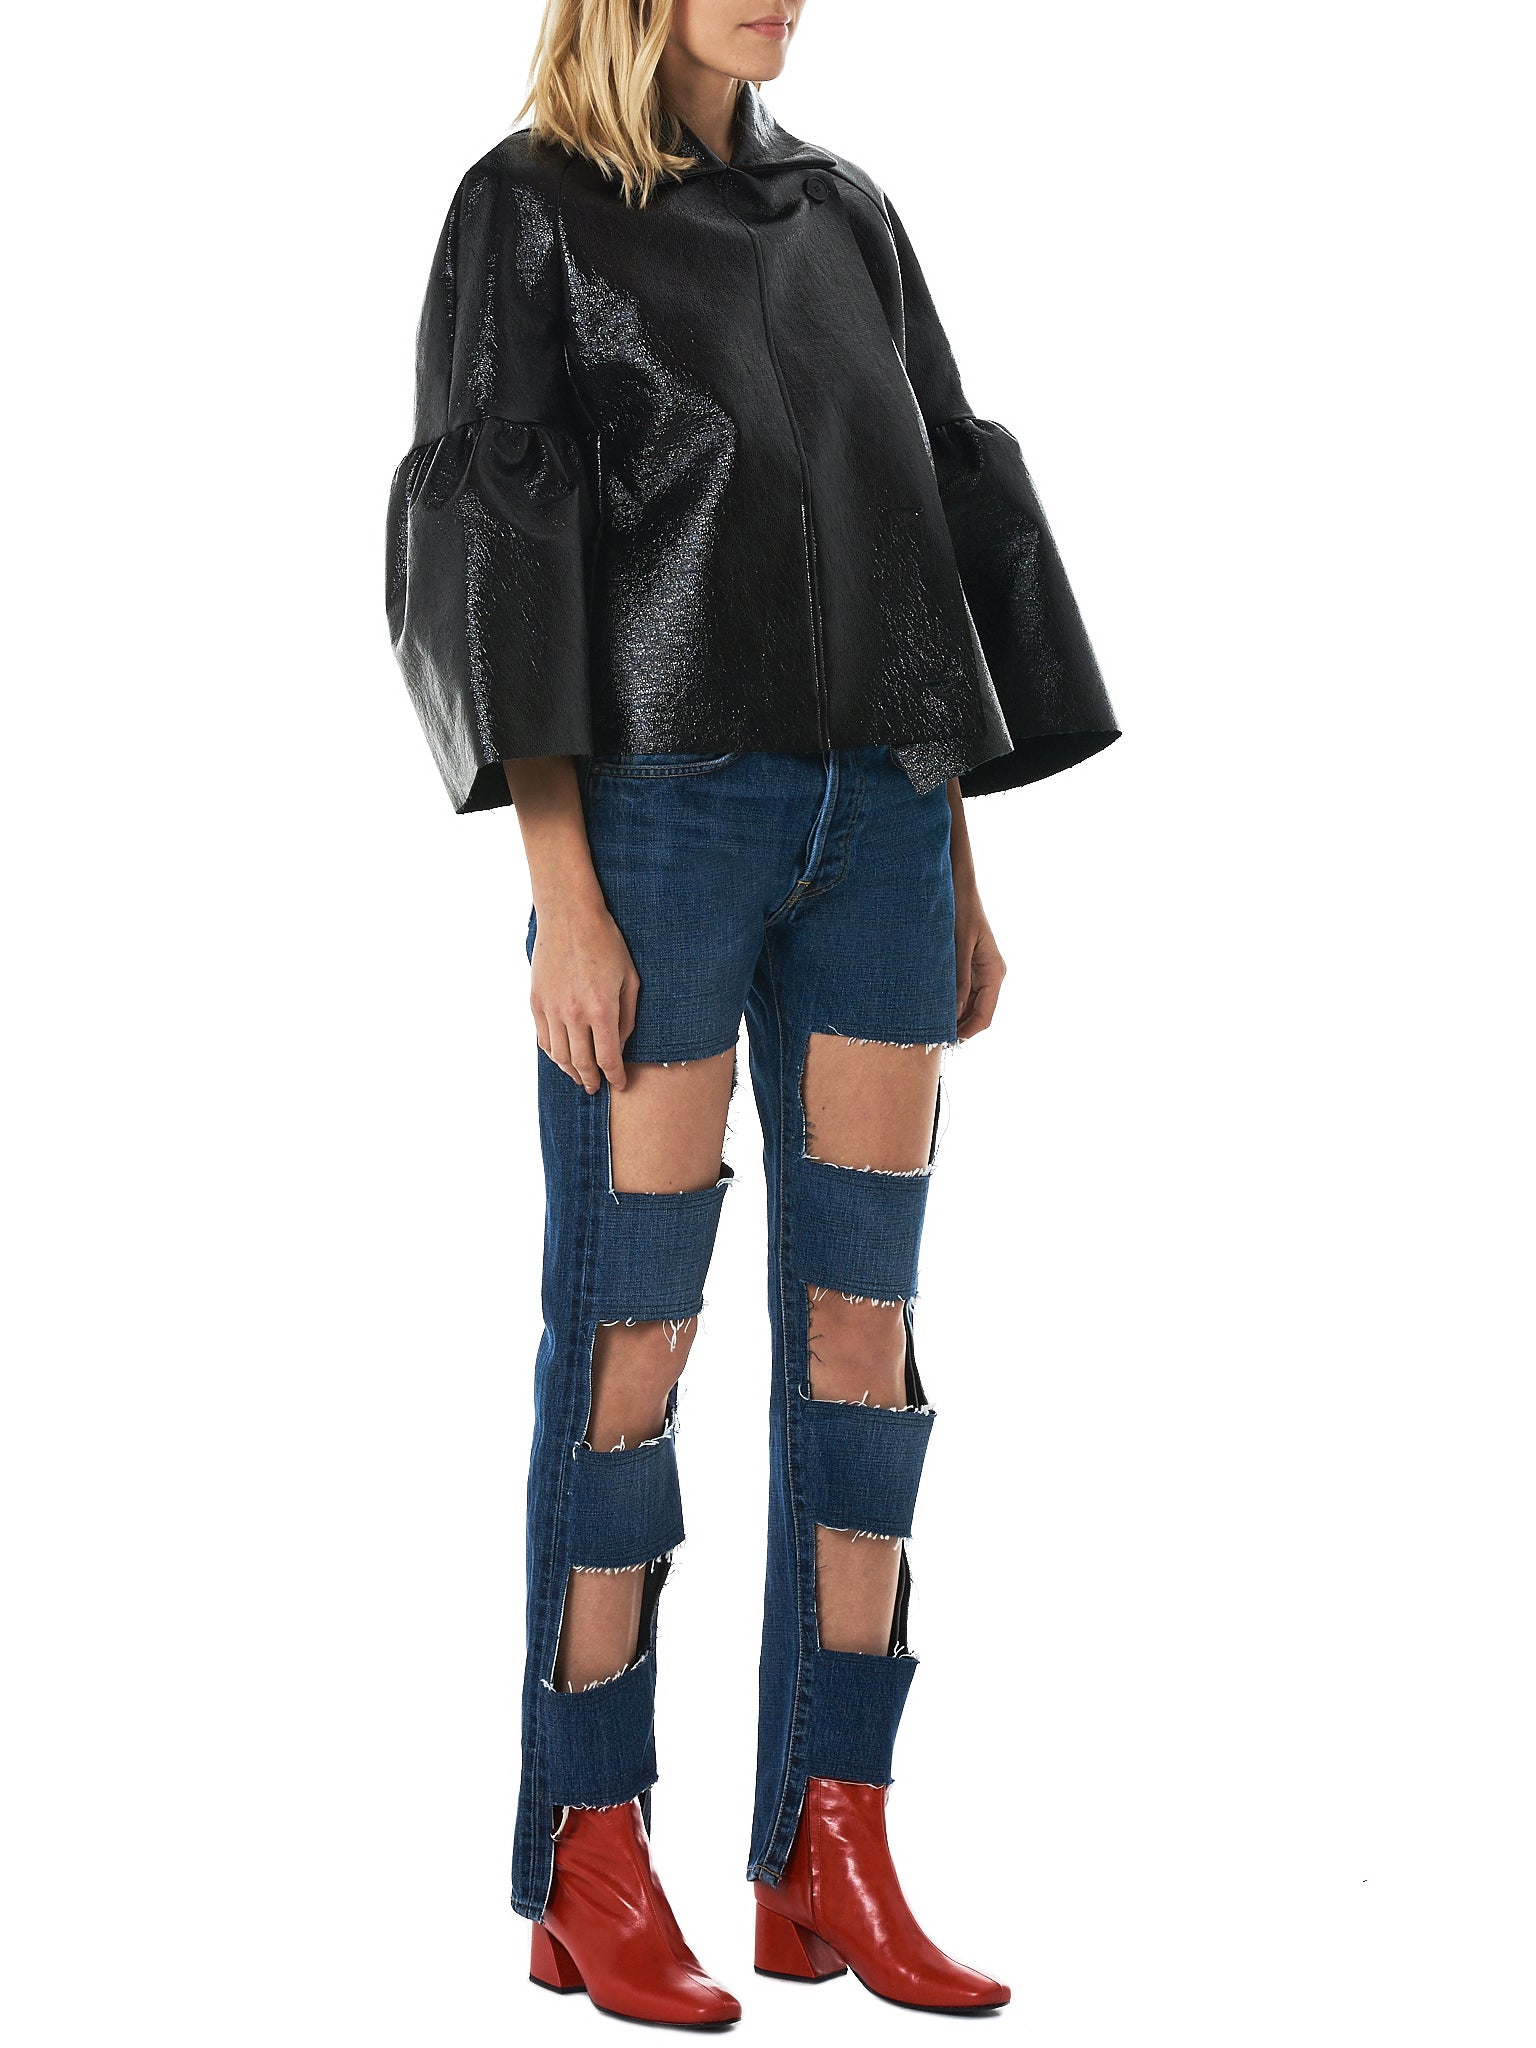 Lutz Huelle Cutout Denim Pants - Hlorenzo Style